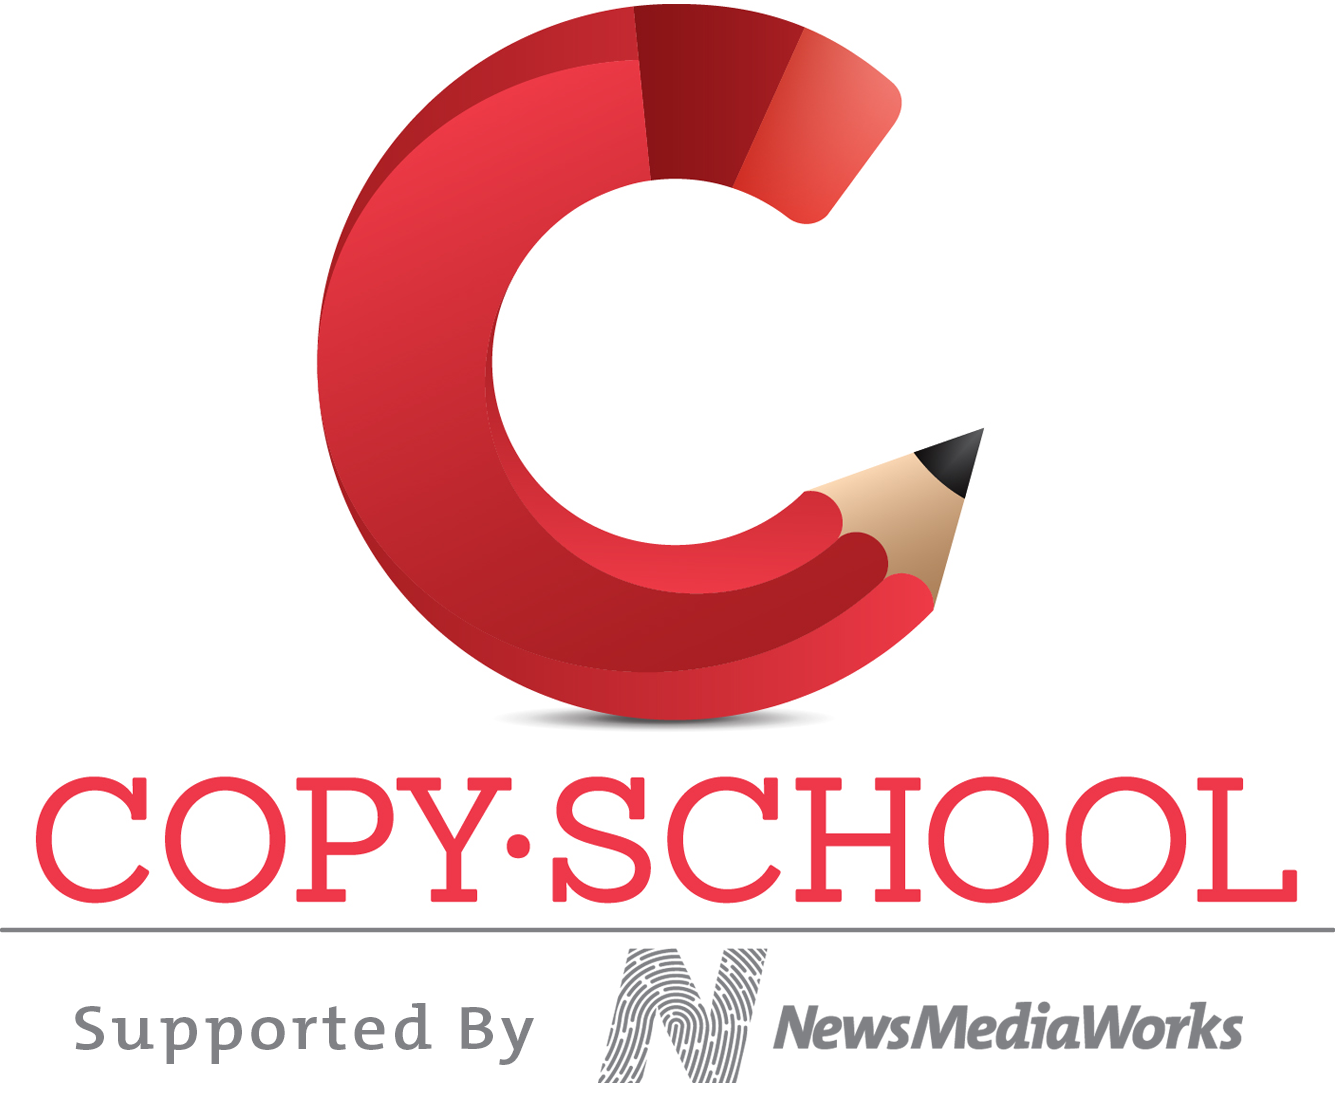 Applications open for 2020 Copy Schools in Melbourne and Sydney ~ Only 20 places available in each school for aspiring copywriters